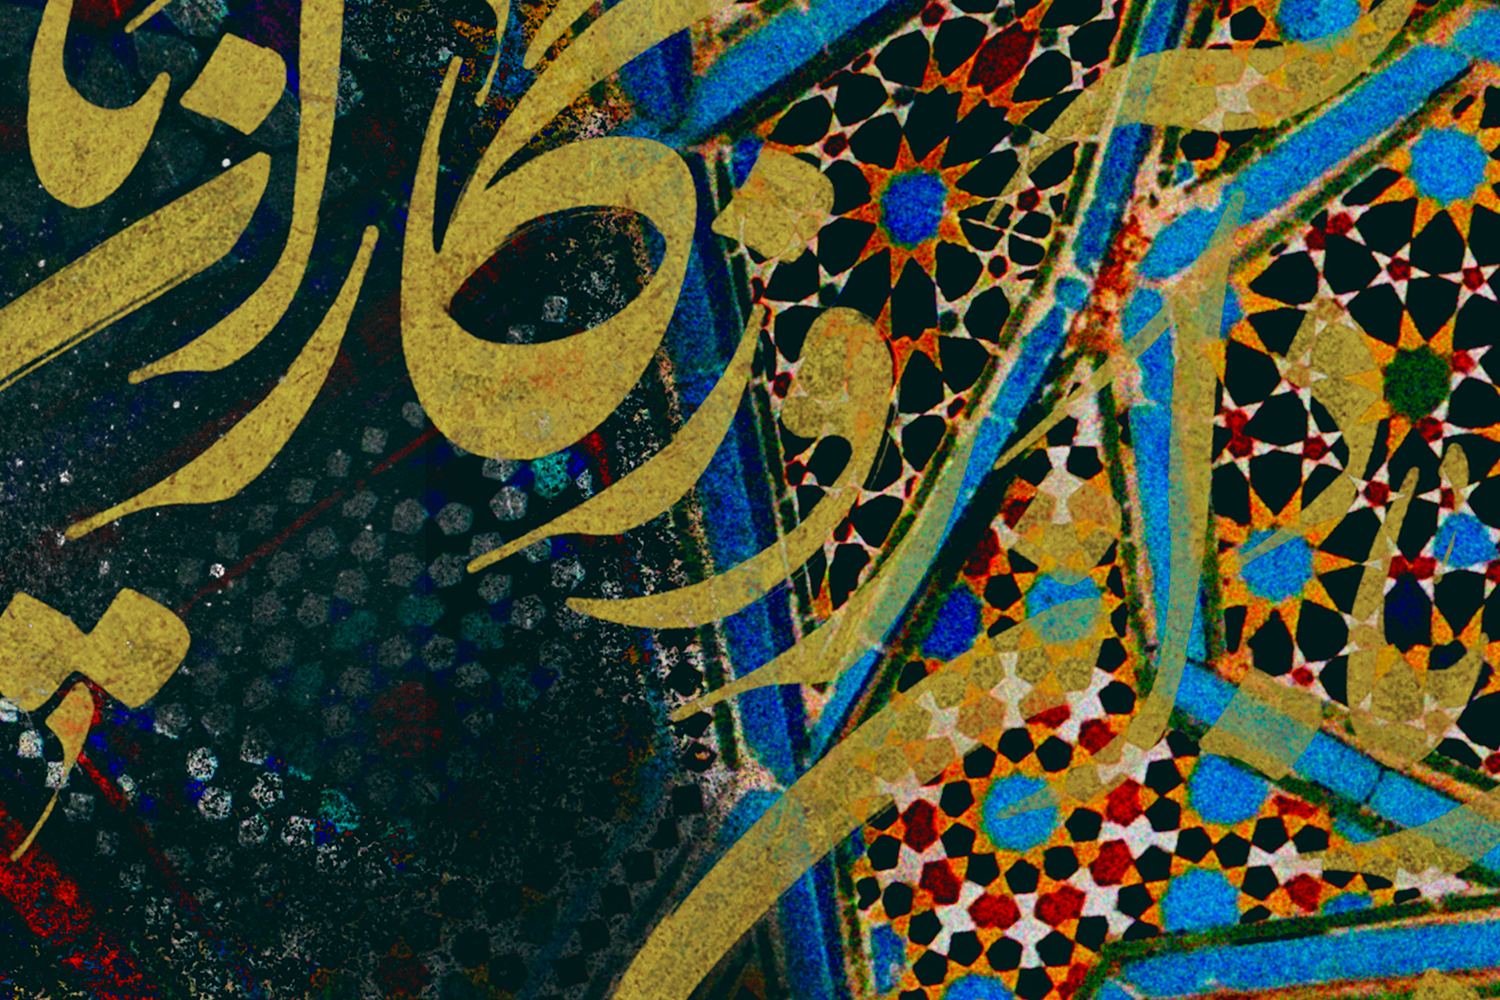 Artwork Persian design details